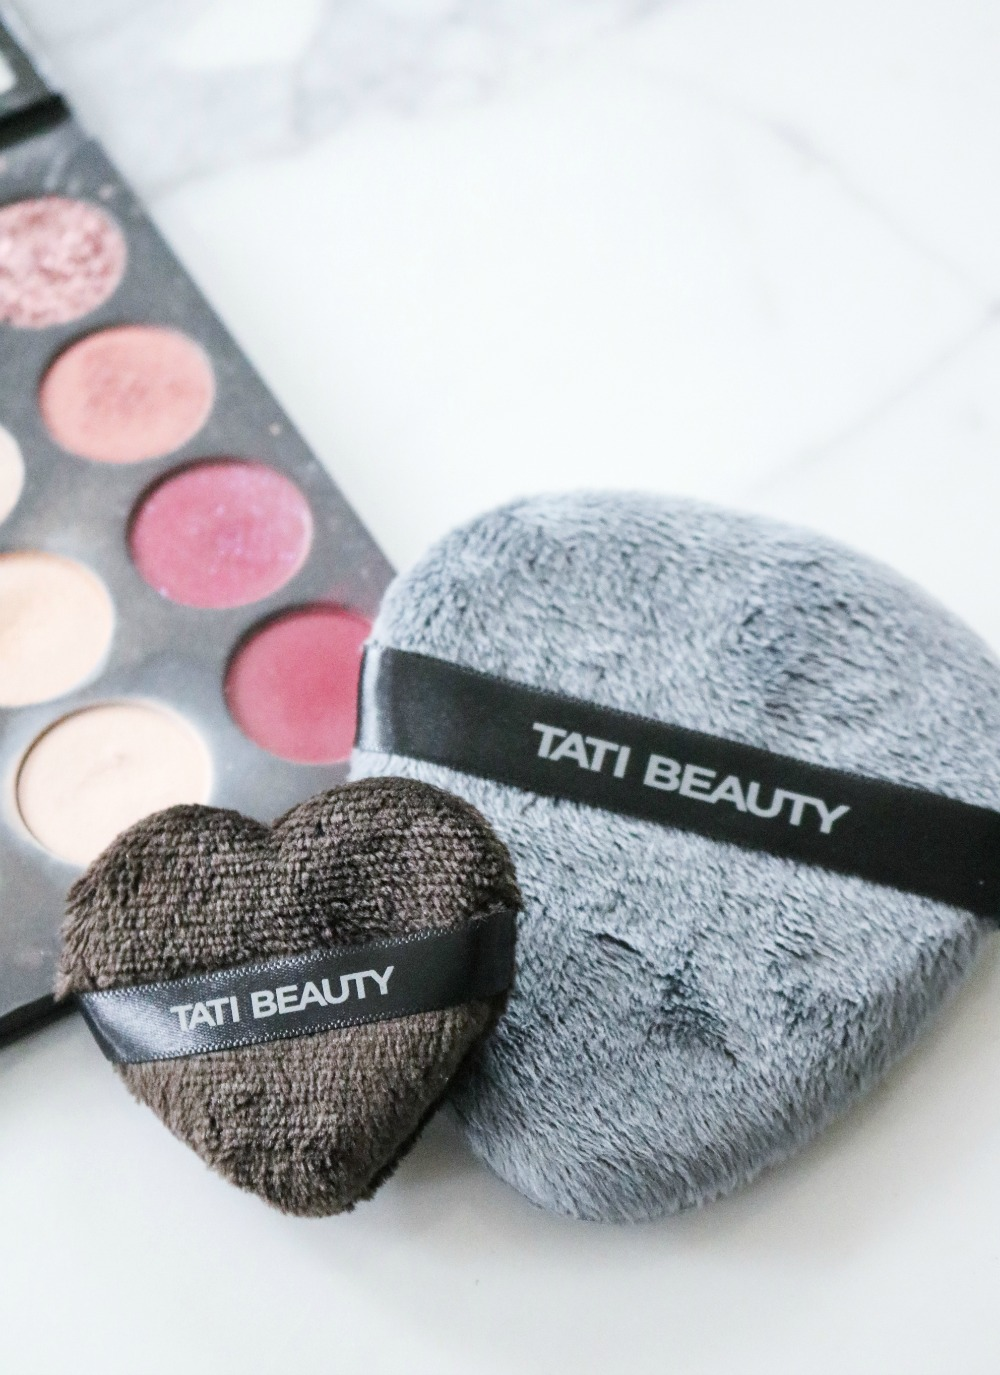 Tati Beauty Blendiful Puff Review I DreaminLace.com